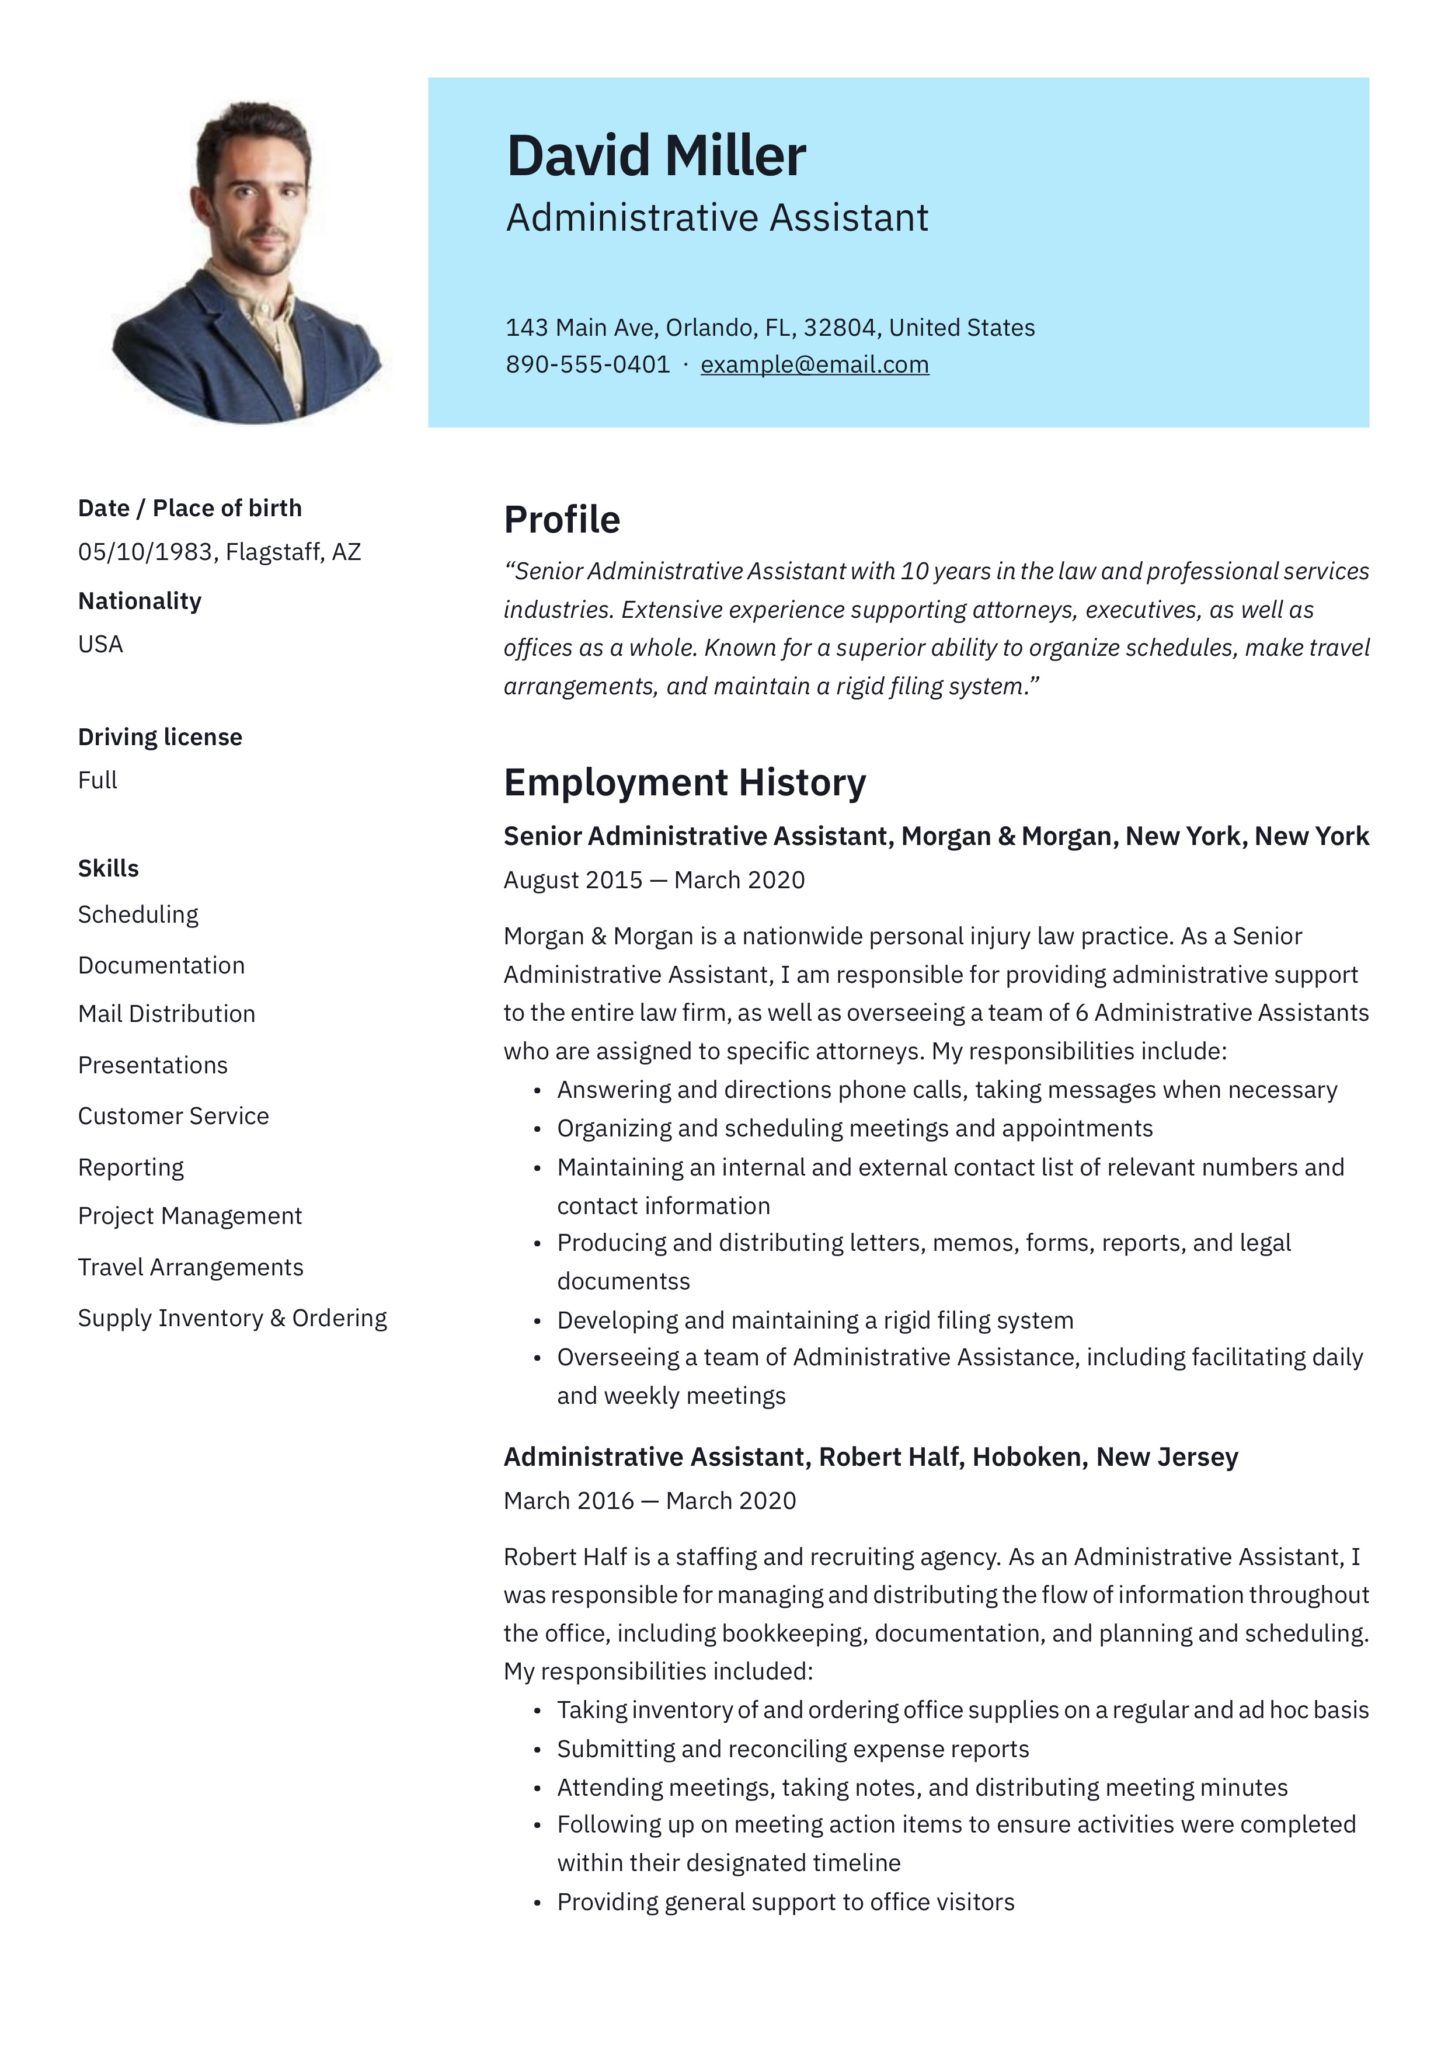 free administrative assistant resumes writing guide pdf executive resume scaled entry Resume Executive Assistant Resume 2020